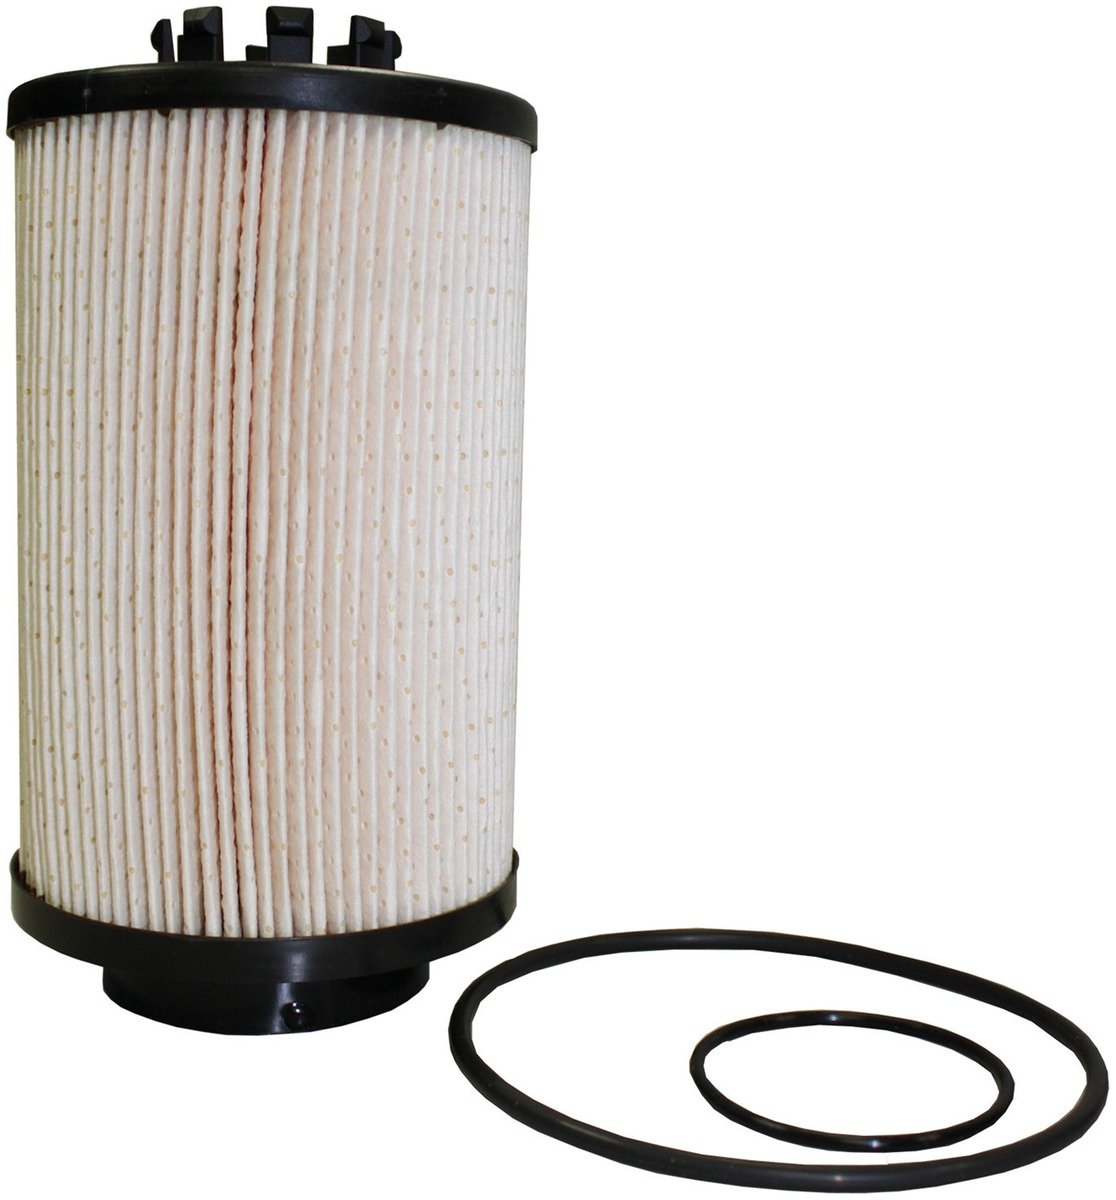 Luber-finer L7694F Heavy Duty Fuel Filter